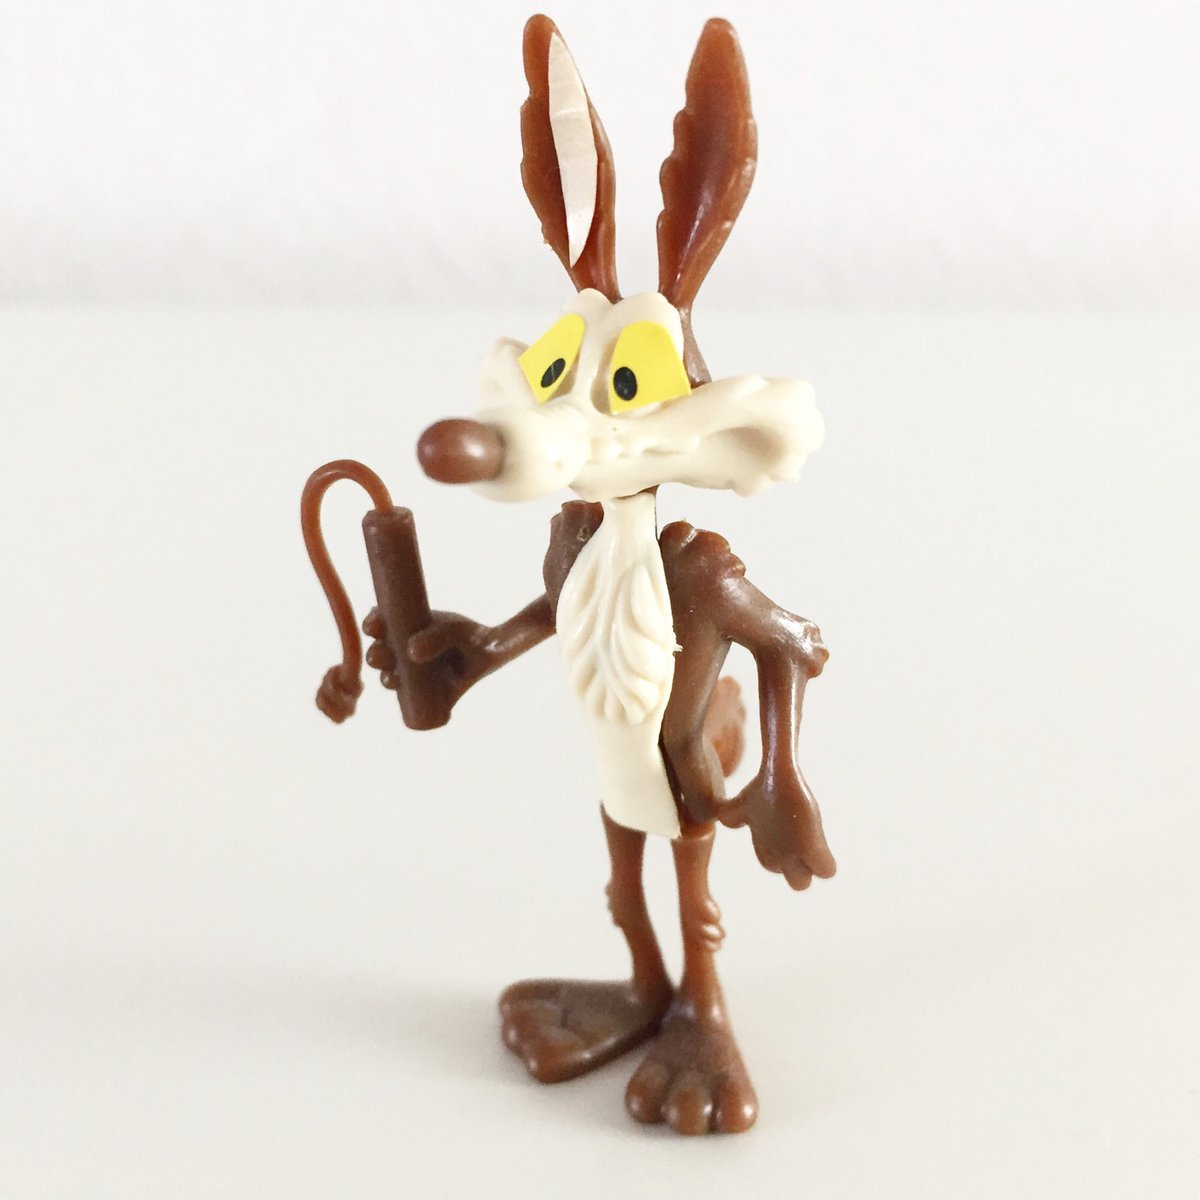 We all know how this ends, don't we...? #SurpriseEggSunday #kindersurprise #surpriseegg #90s #surpriseeggs #kinderegg #90stoys #kindereggs #kindersurpriseegg #toysfromtheattic #figurine #figurines #toys #wilecoyote #roadrunner #warnerbros #looneytunes #looneytoons #toyphotography https://t.co/pOWF84o0Hj